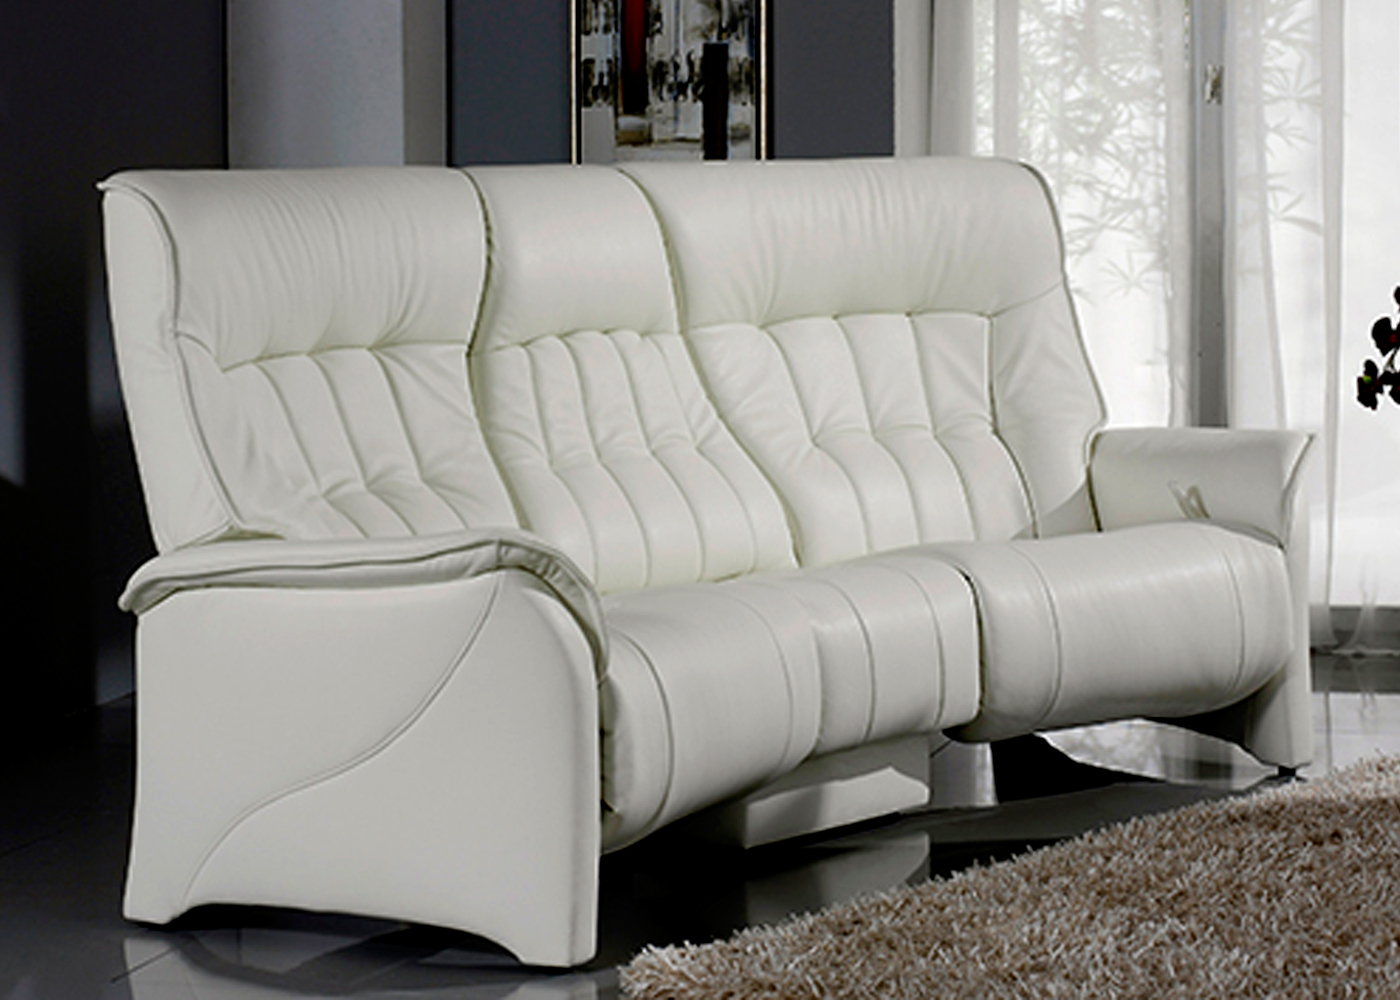 Himolla Rhine 3 Seater Sofa  Midfurn Furniture Superstore